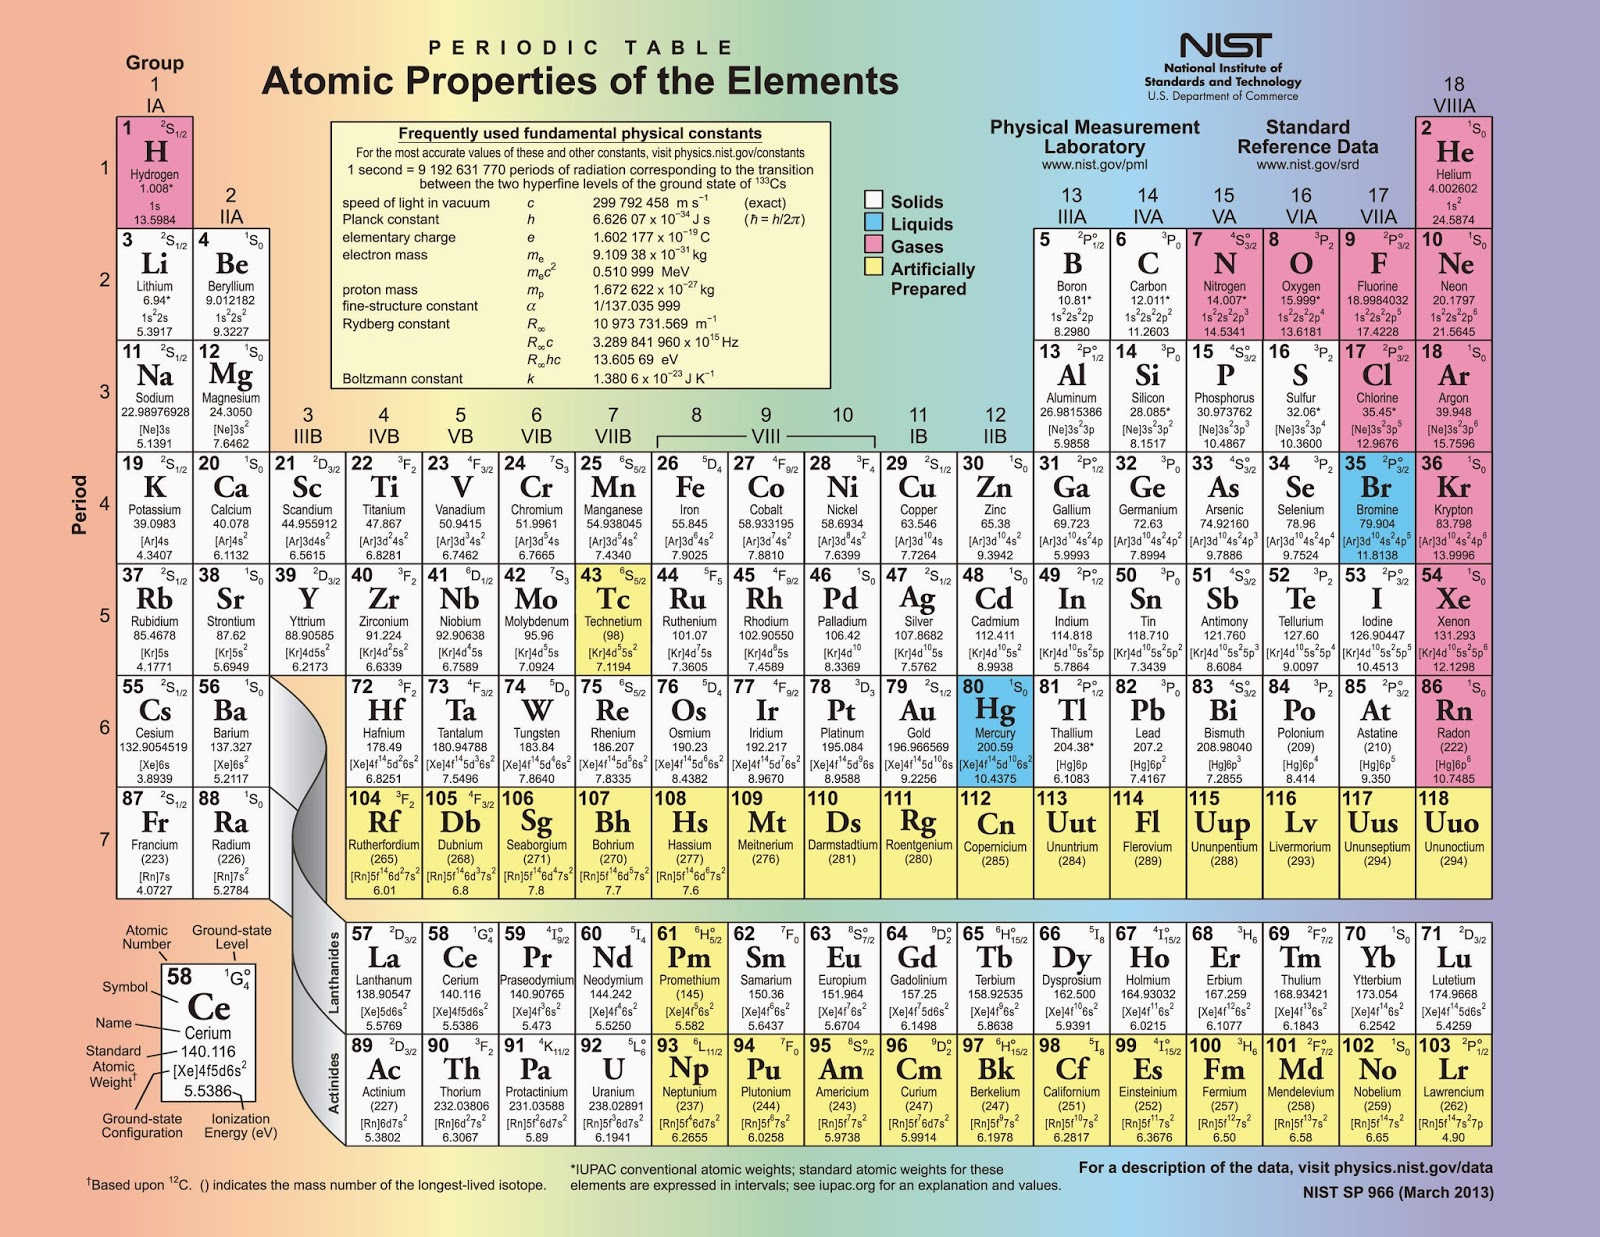 Cyanide periodic table gallery periodic table images periodic table uh choice image periodic table images uh periodic table gallery periodic table images cyanide gamestrikefo Image collections